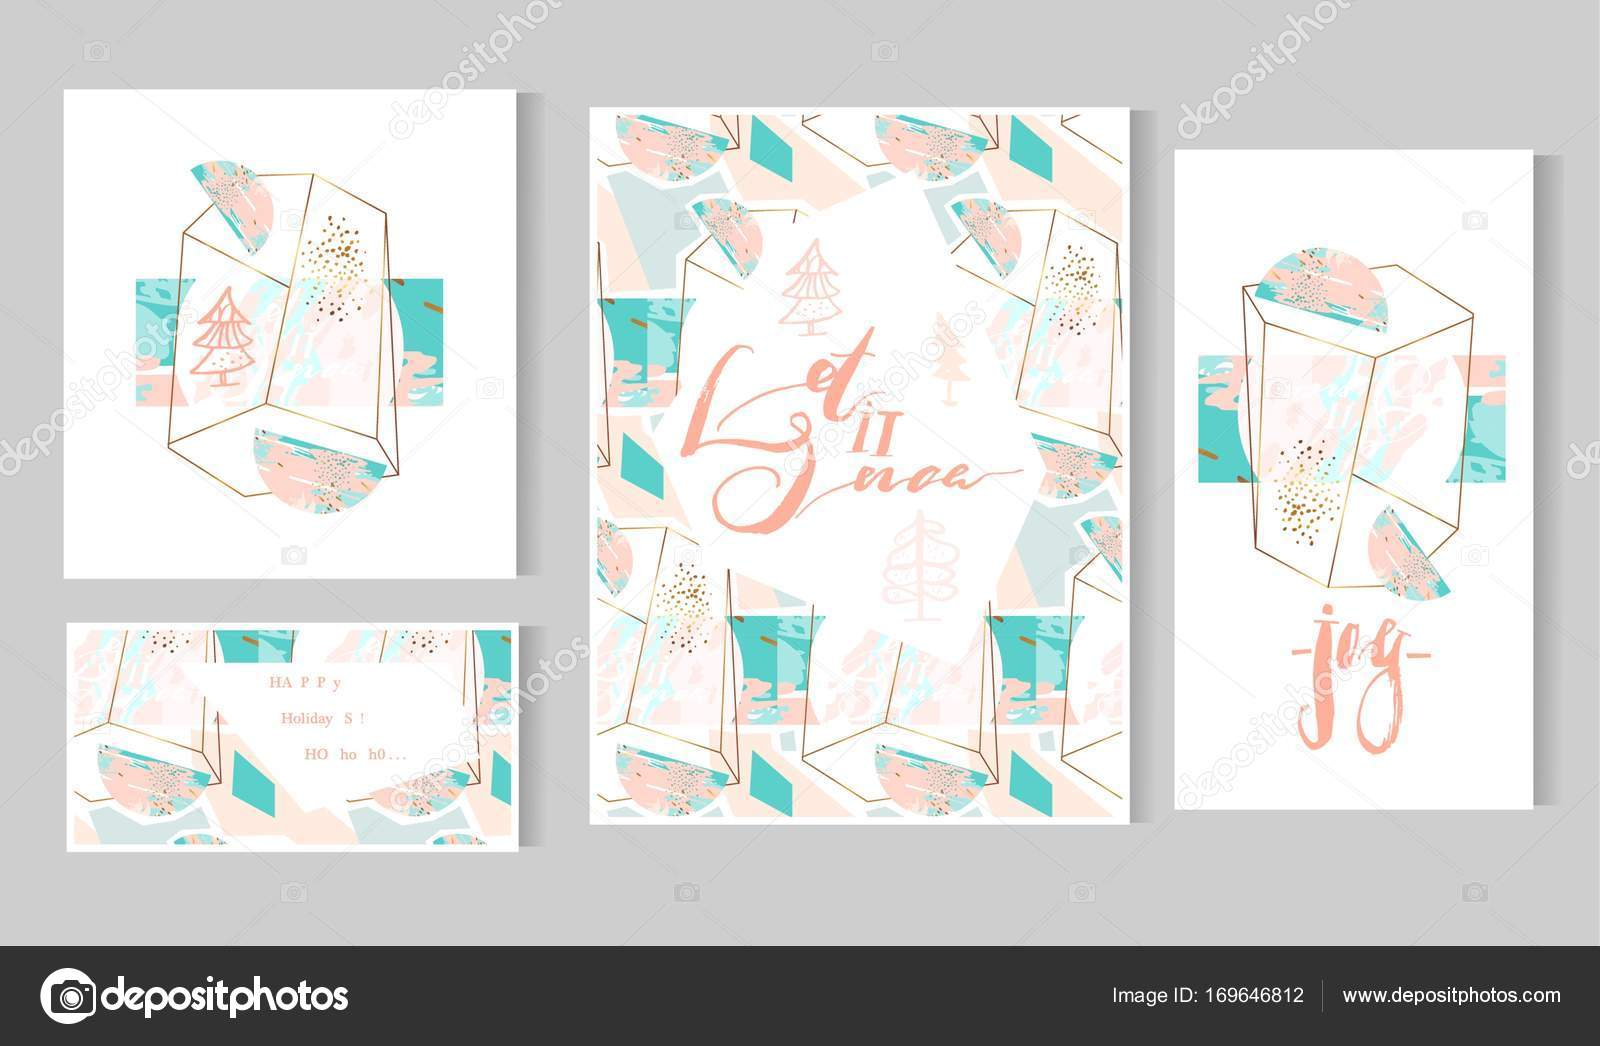 Hand Drawn Vector Abstract Artistic Geometric Merry Christmas Greeting Cards Template Set On Polygonal Terrarium Background In Gold White Pink Pastel And Tiffany Blue Colors Stock Vector C Helter Skelter Nastya Yandex Ru 169646812